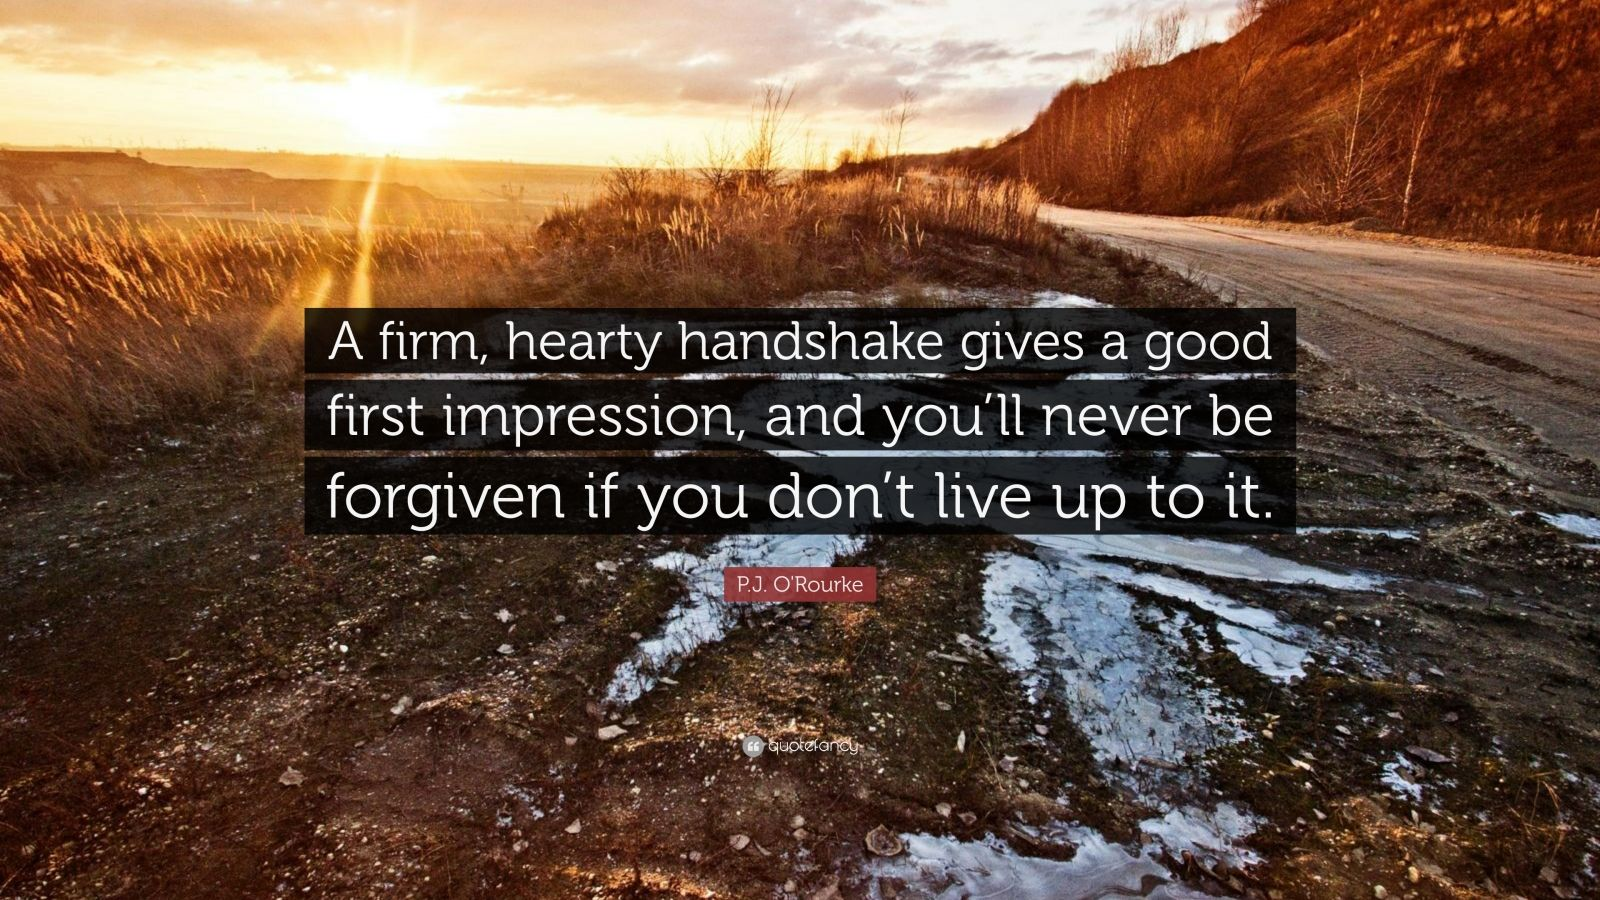 """P.J. O'Rourke Quote: """"A firm, hearty handshake gives a good first impression, and you'll never be forgiven if you don't live up to it."""""""